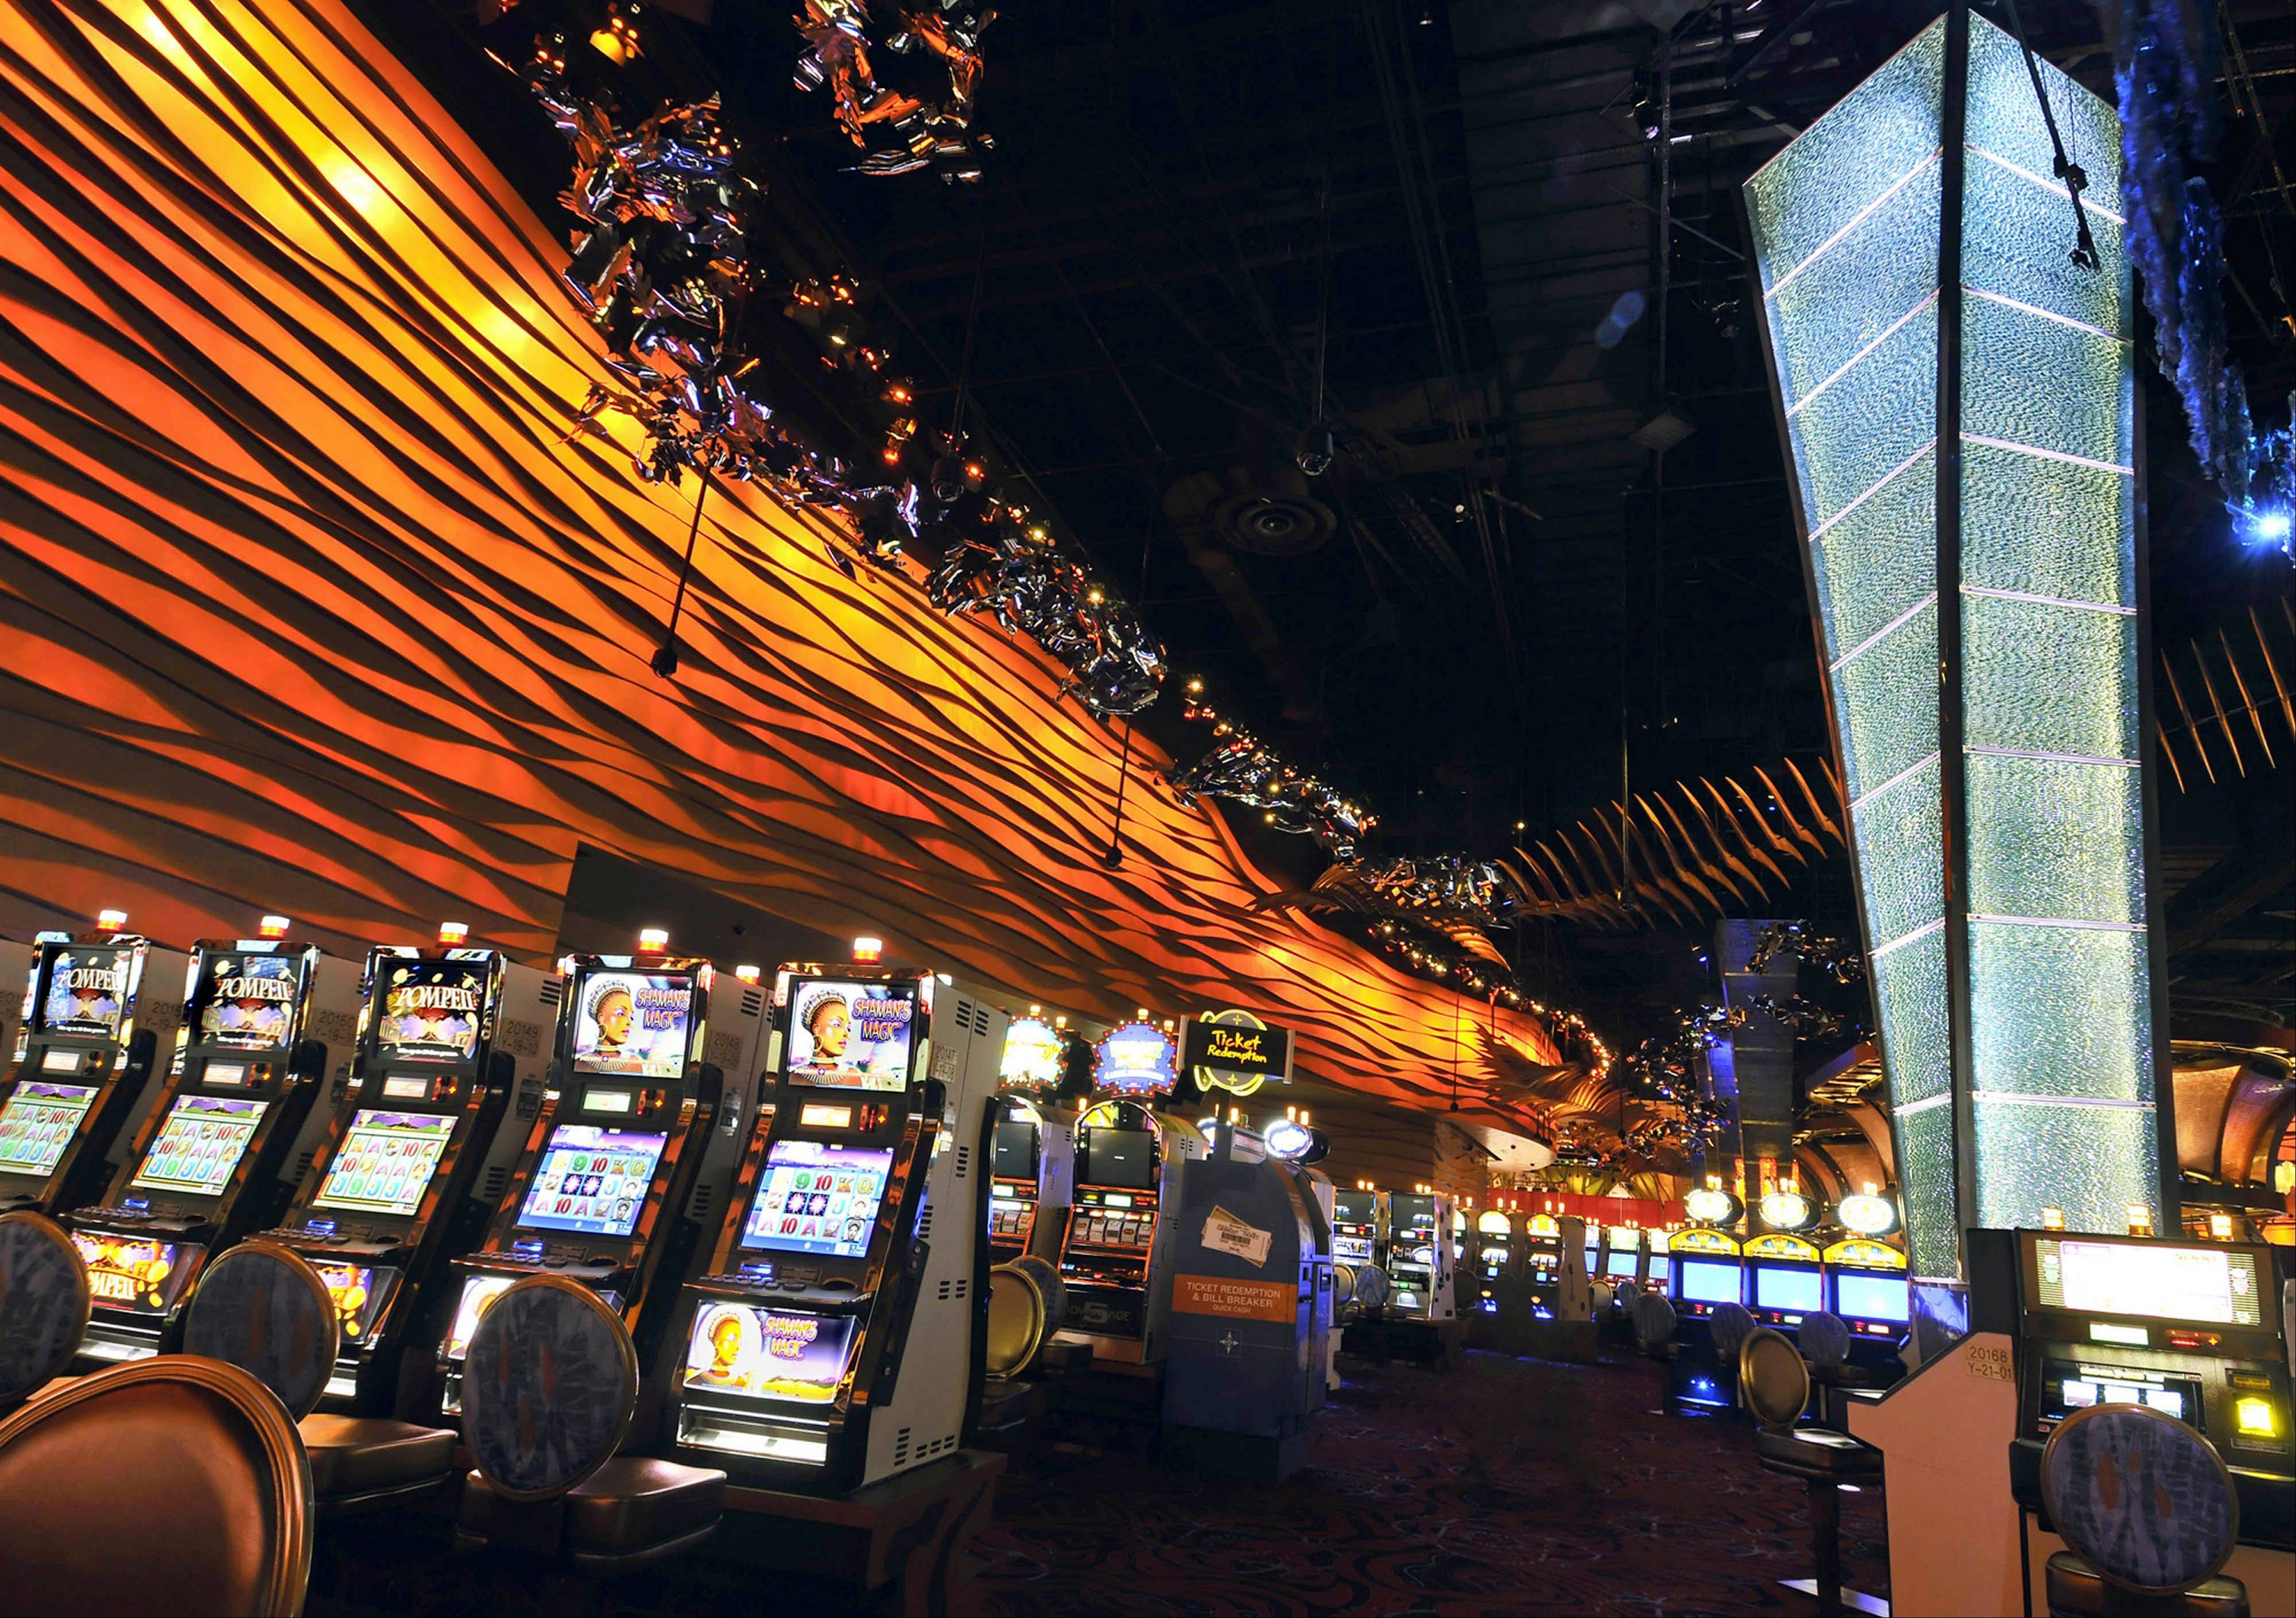 Slot machines are seen on the floor of the Casino of the Wind at Mohegan Sun in Uncasville, Conn. The spread of casino gambling is reaping billions of dollars for industry and government coffers, but also is creating more compulsive gamblers.